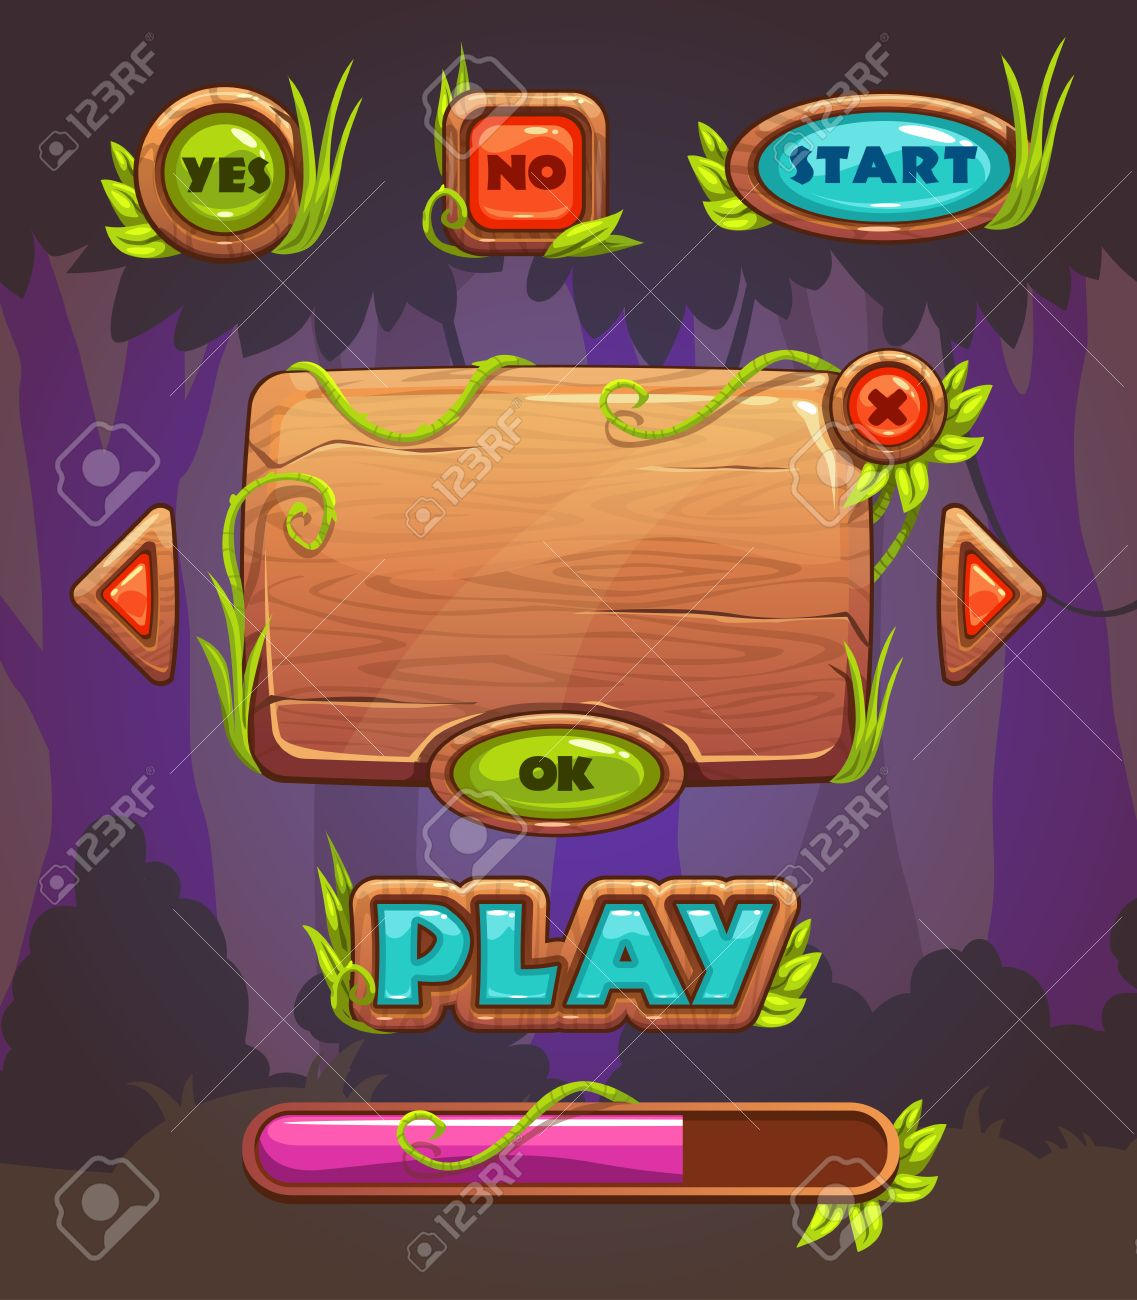 Cartoon wooden game user interface, vector assets for mobile